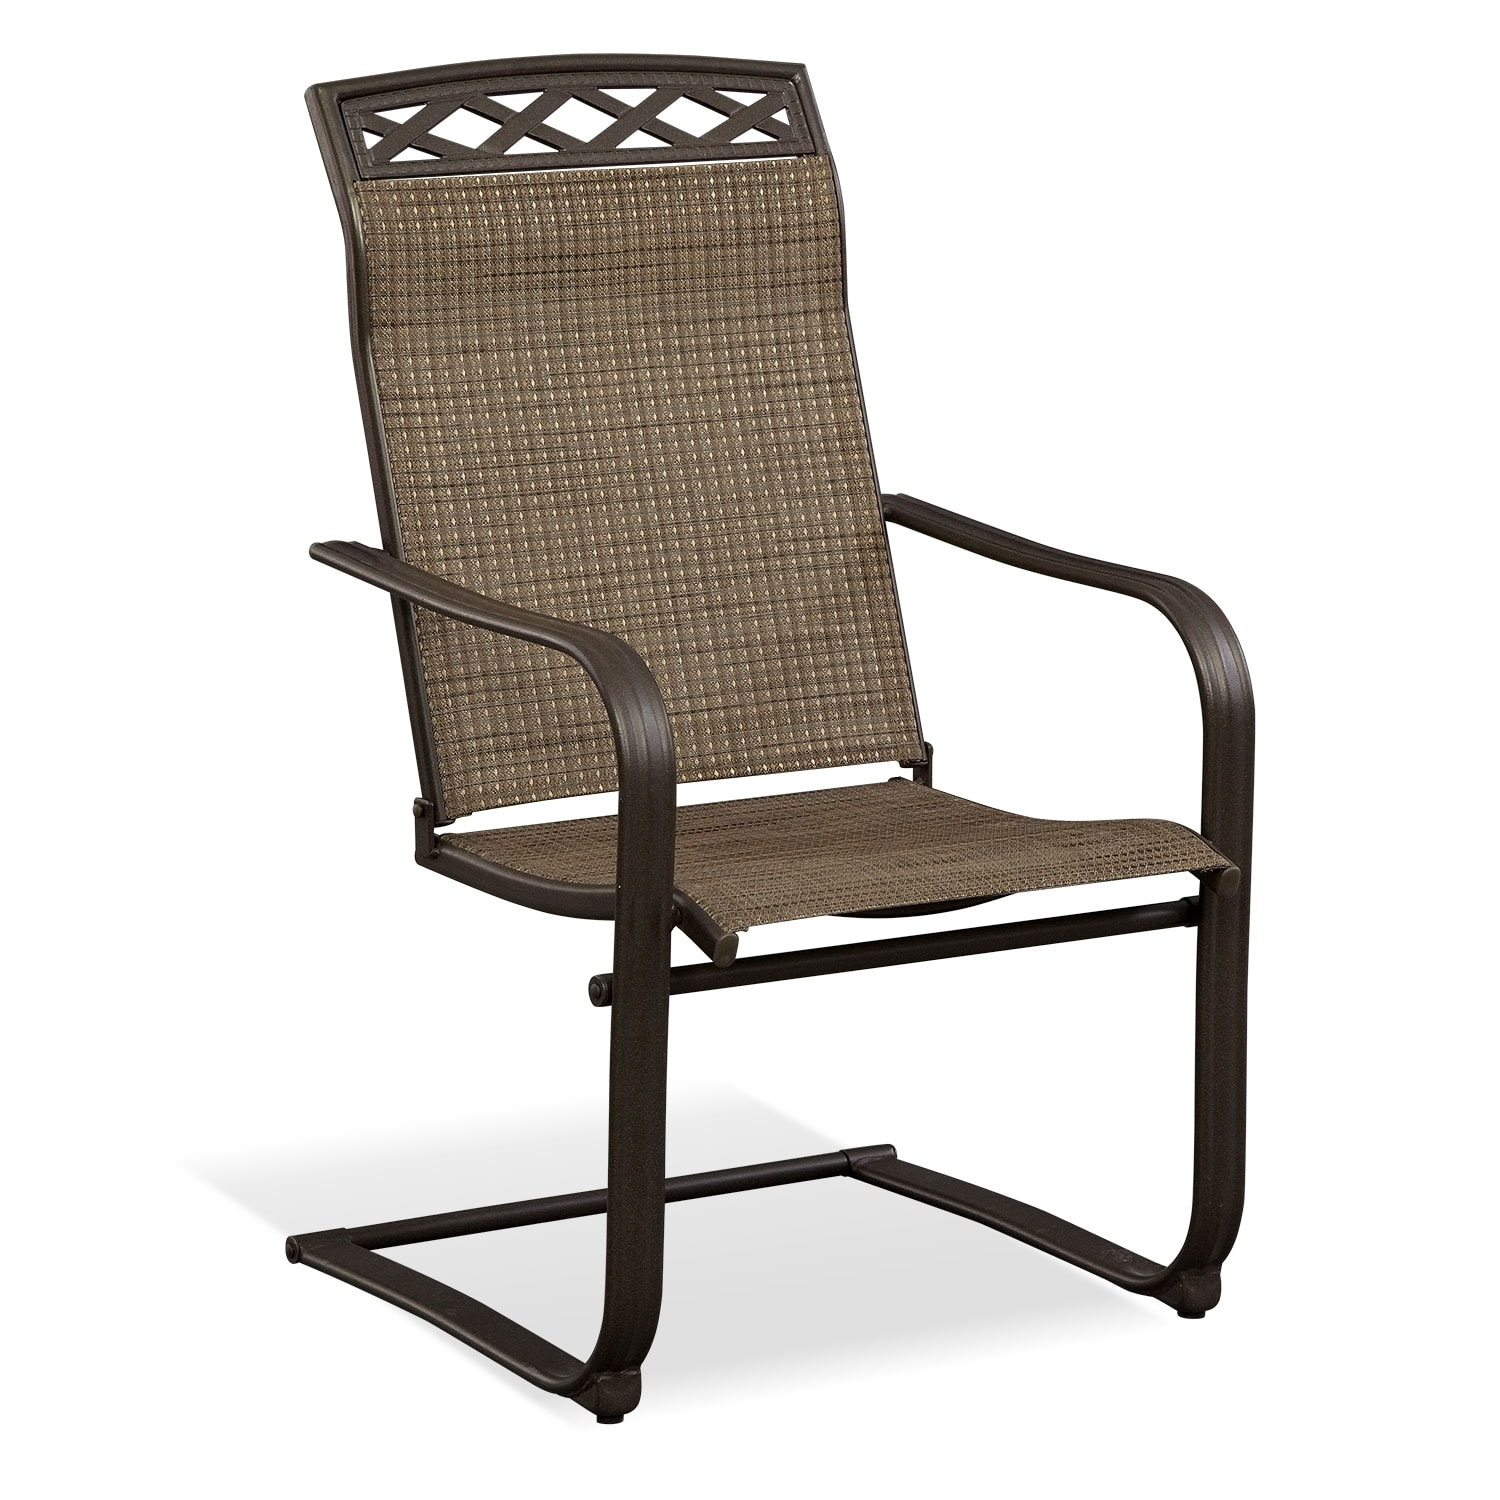 Outdoor Furniture - Terrace Spring Chair